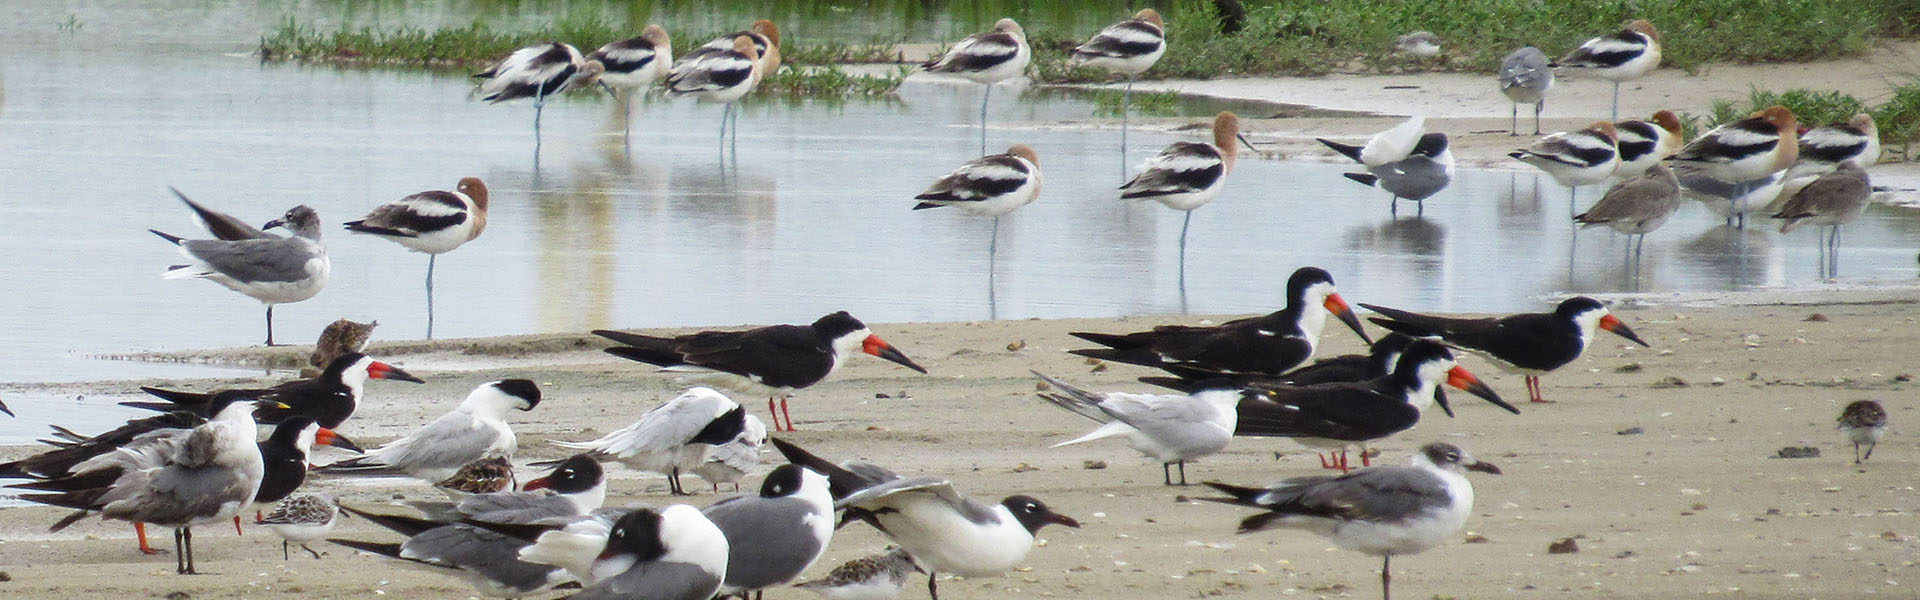 Mixed Flock of Shorebirds by Kristine Rivers